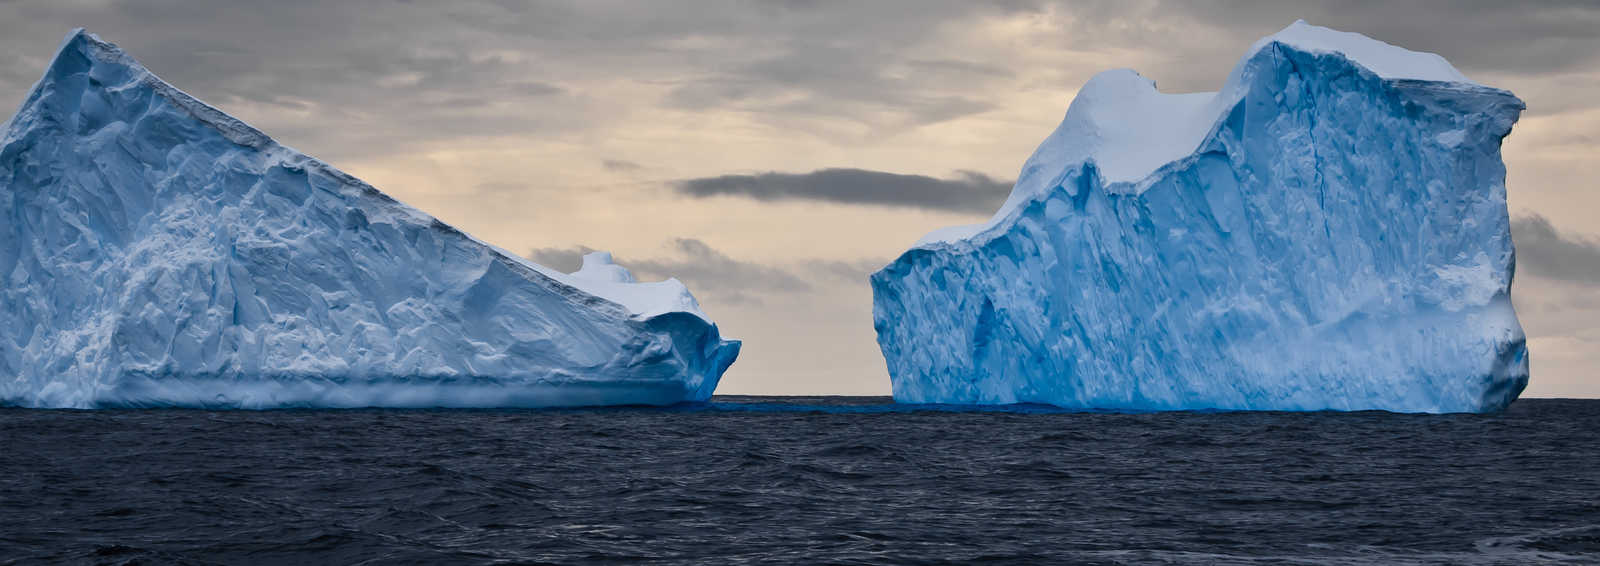 Huge icebergs in Antarctica, dark sky